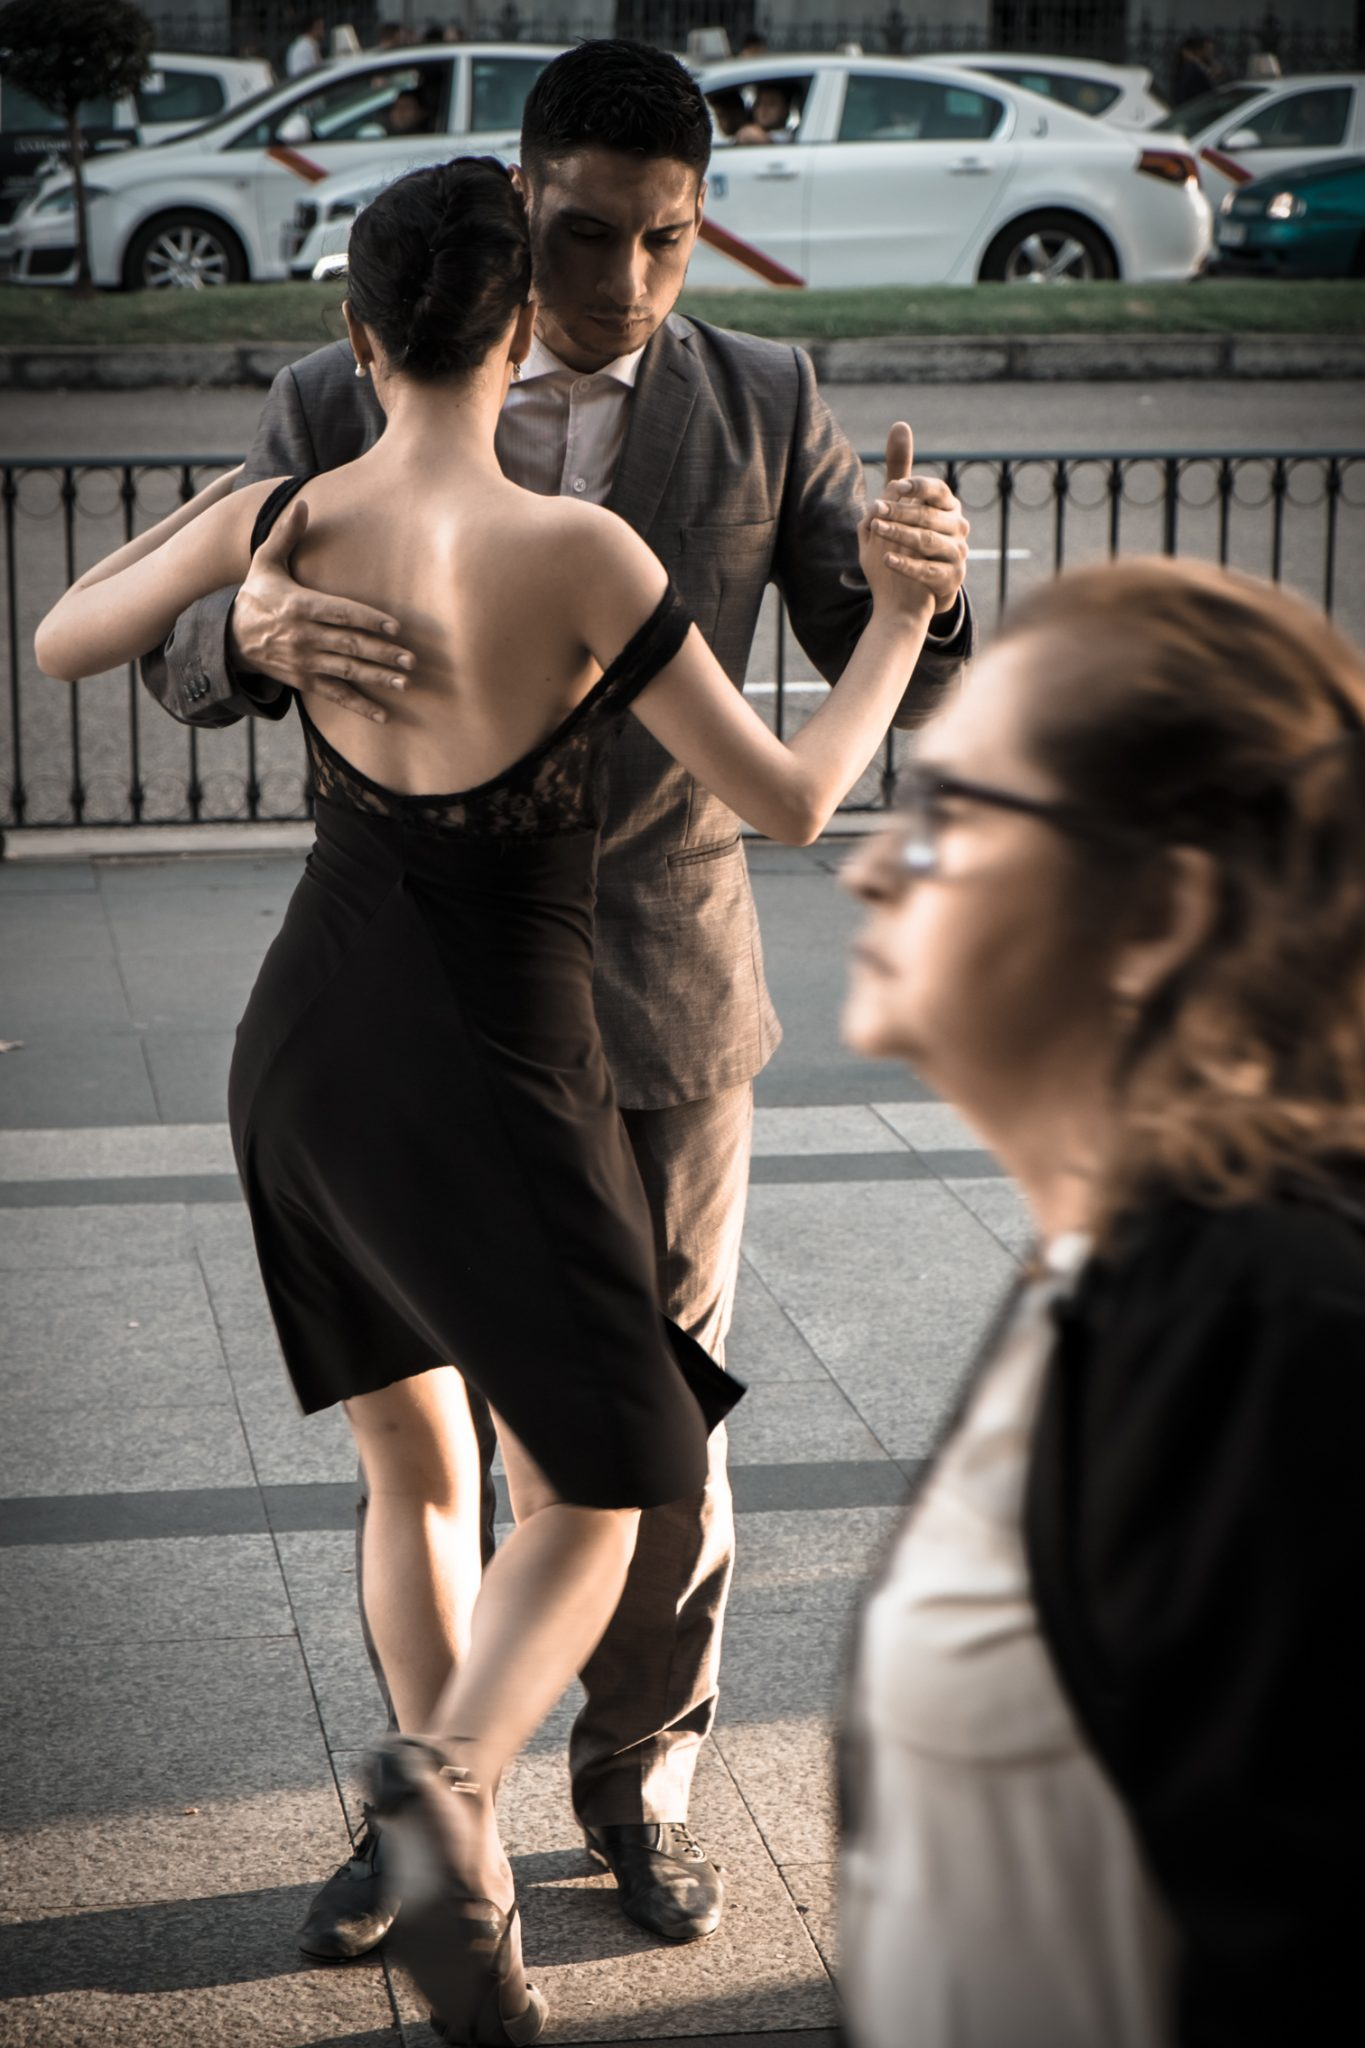 Couple dancing tango in the streets of Madrid photo by Jo Kassis